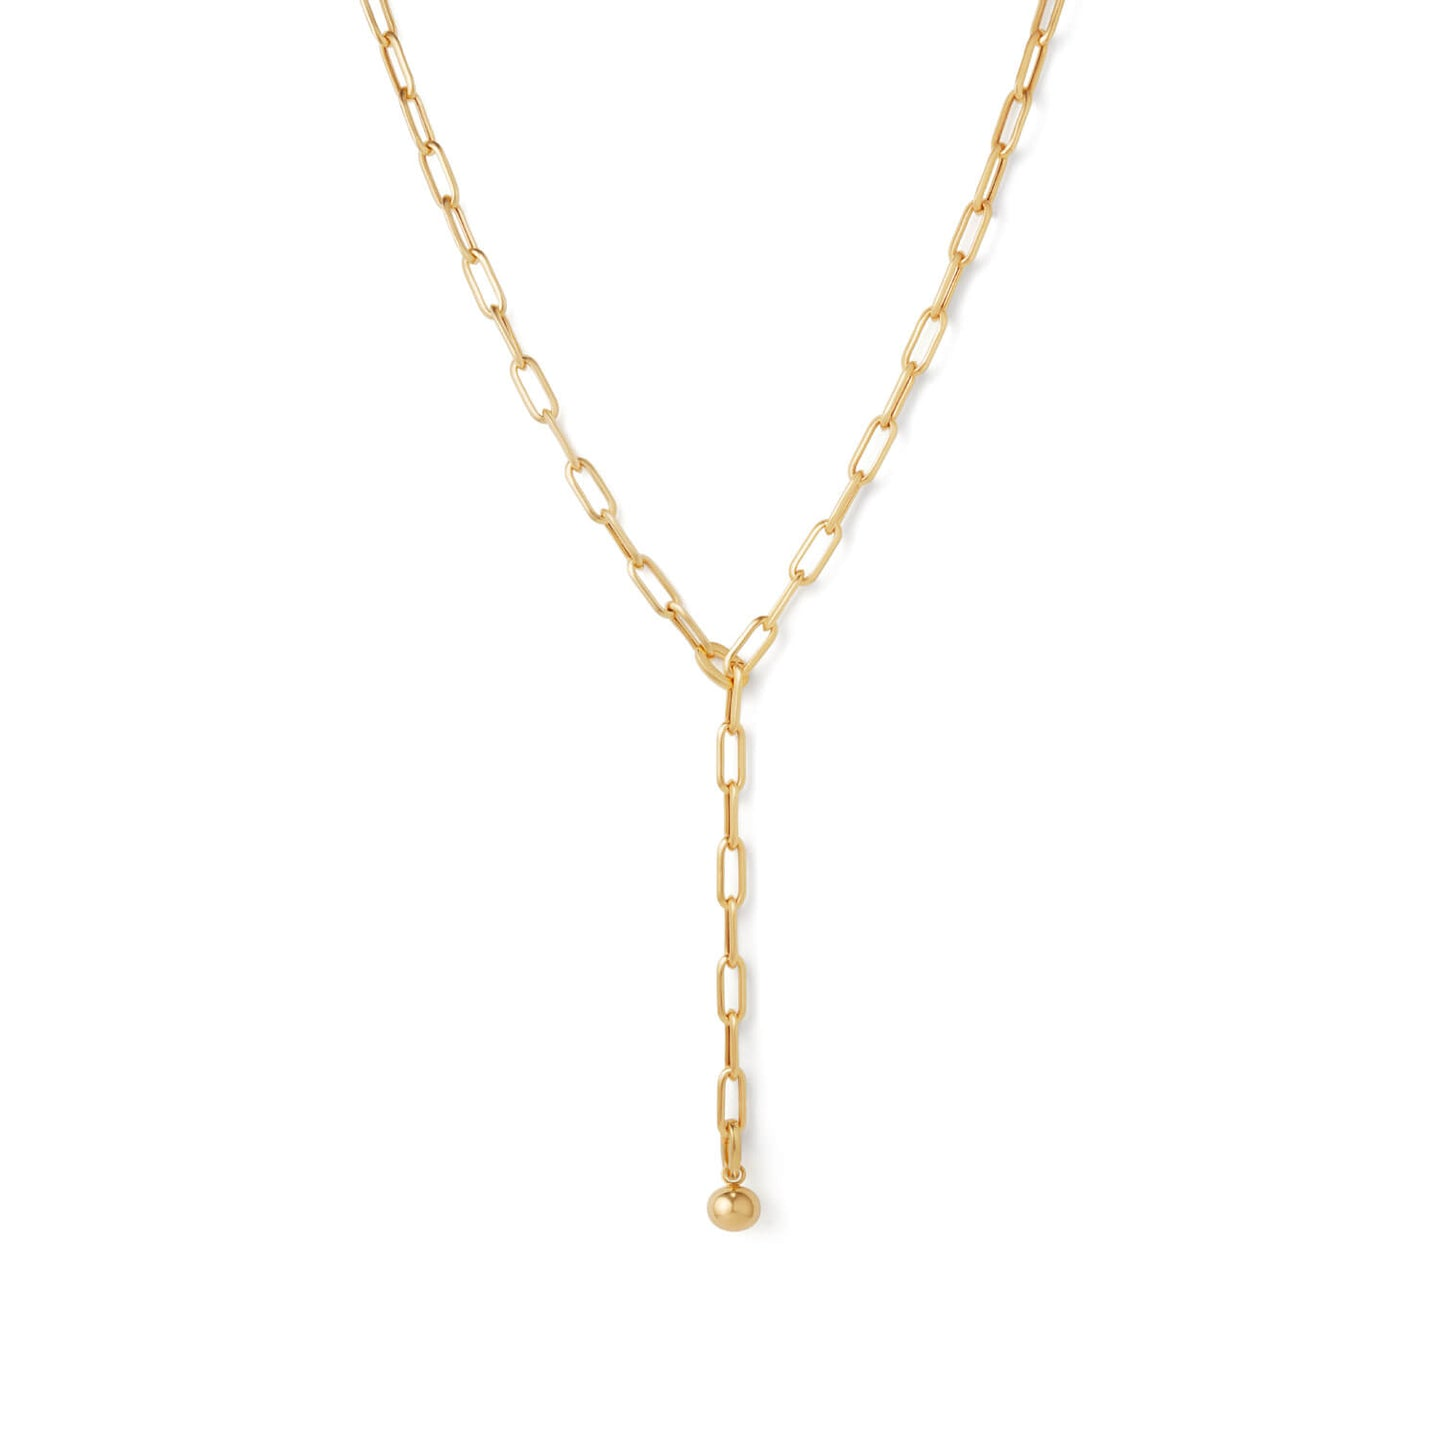 Gold Curator Necklace with Charm